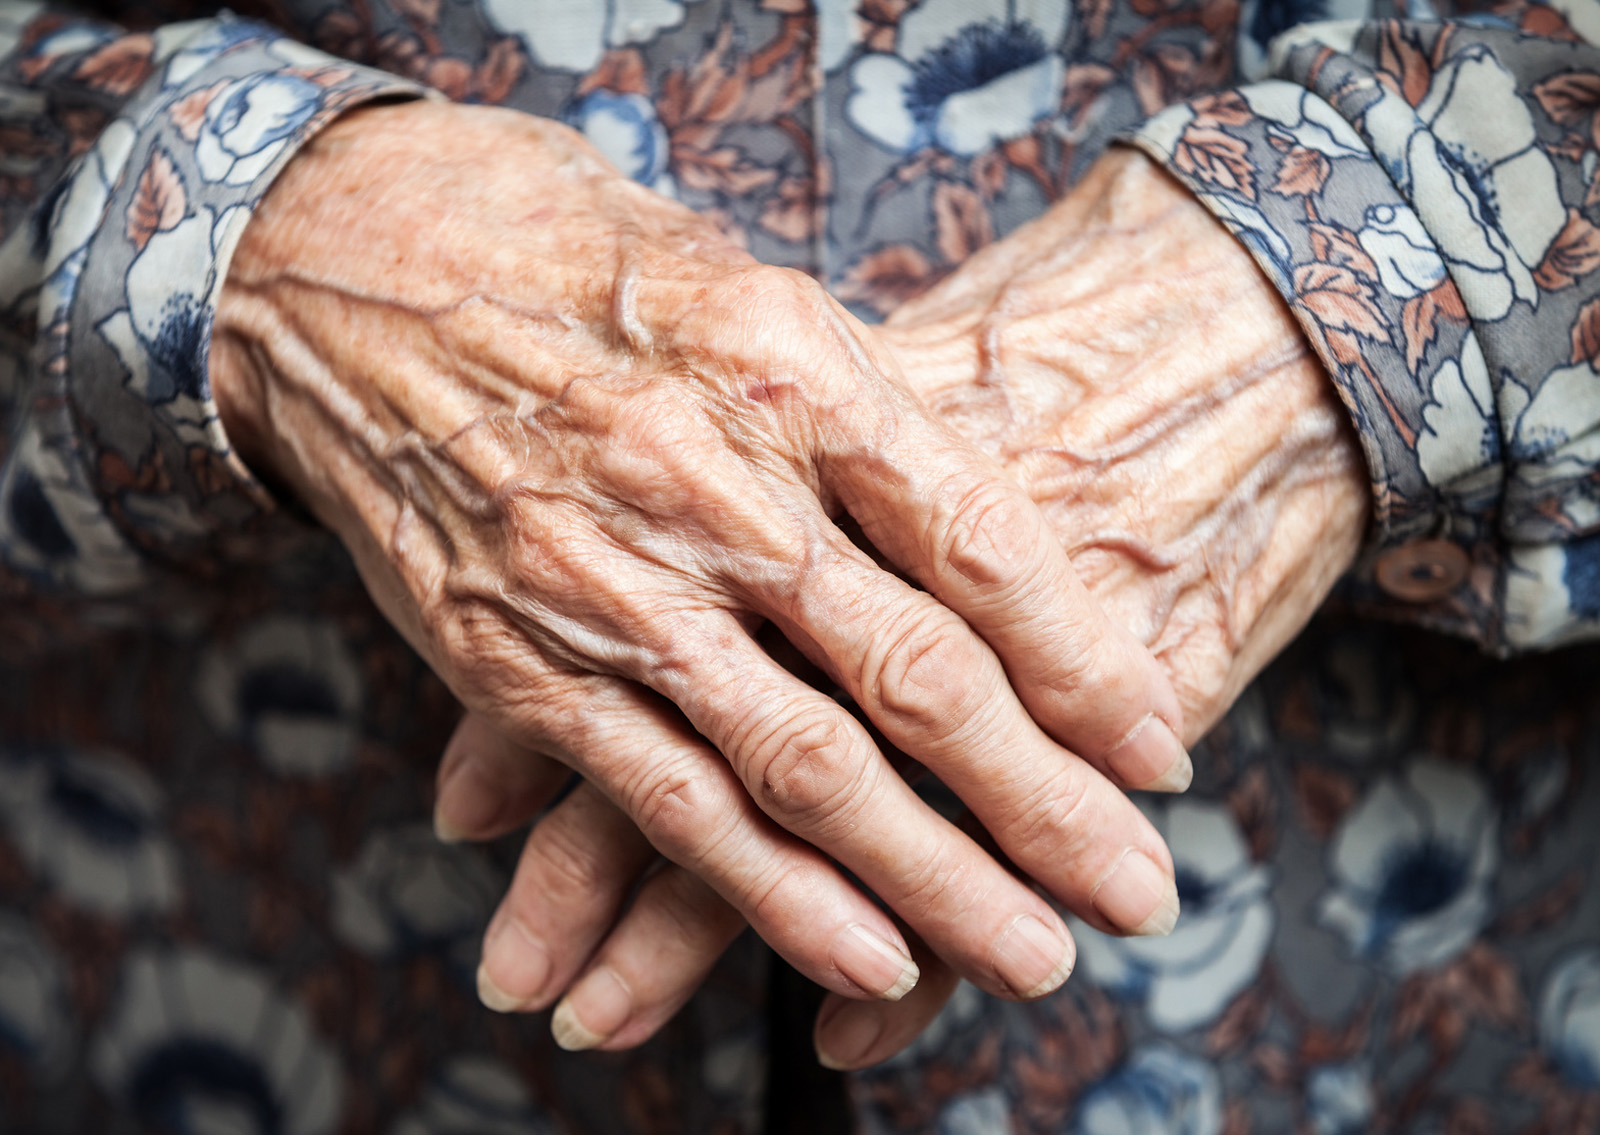 The hands of Emma Morano, last survivor of 19th century died at age 117!